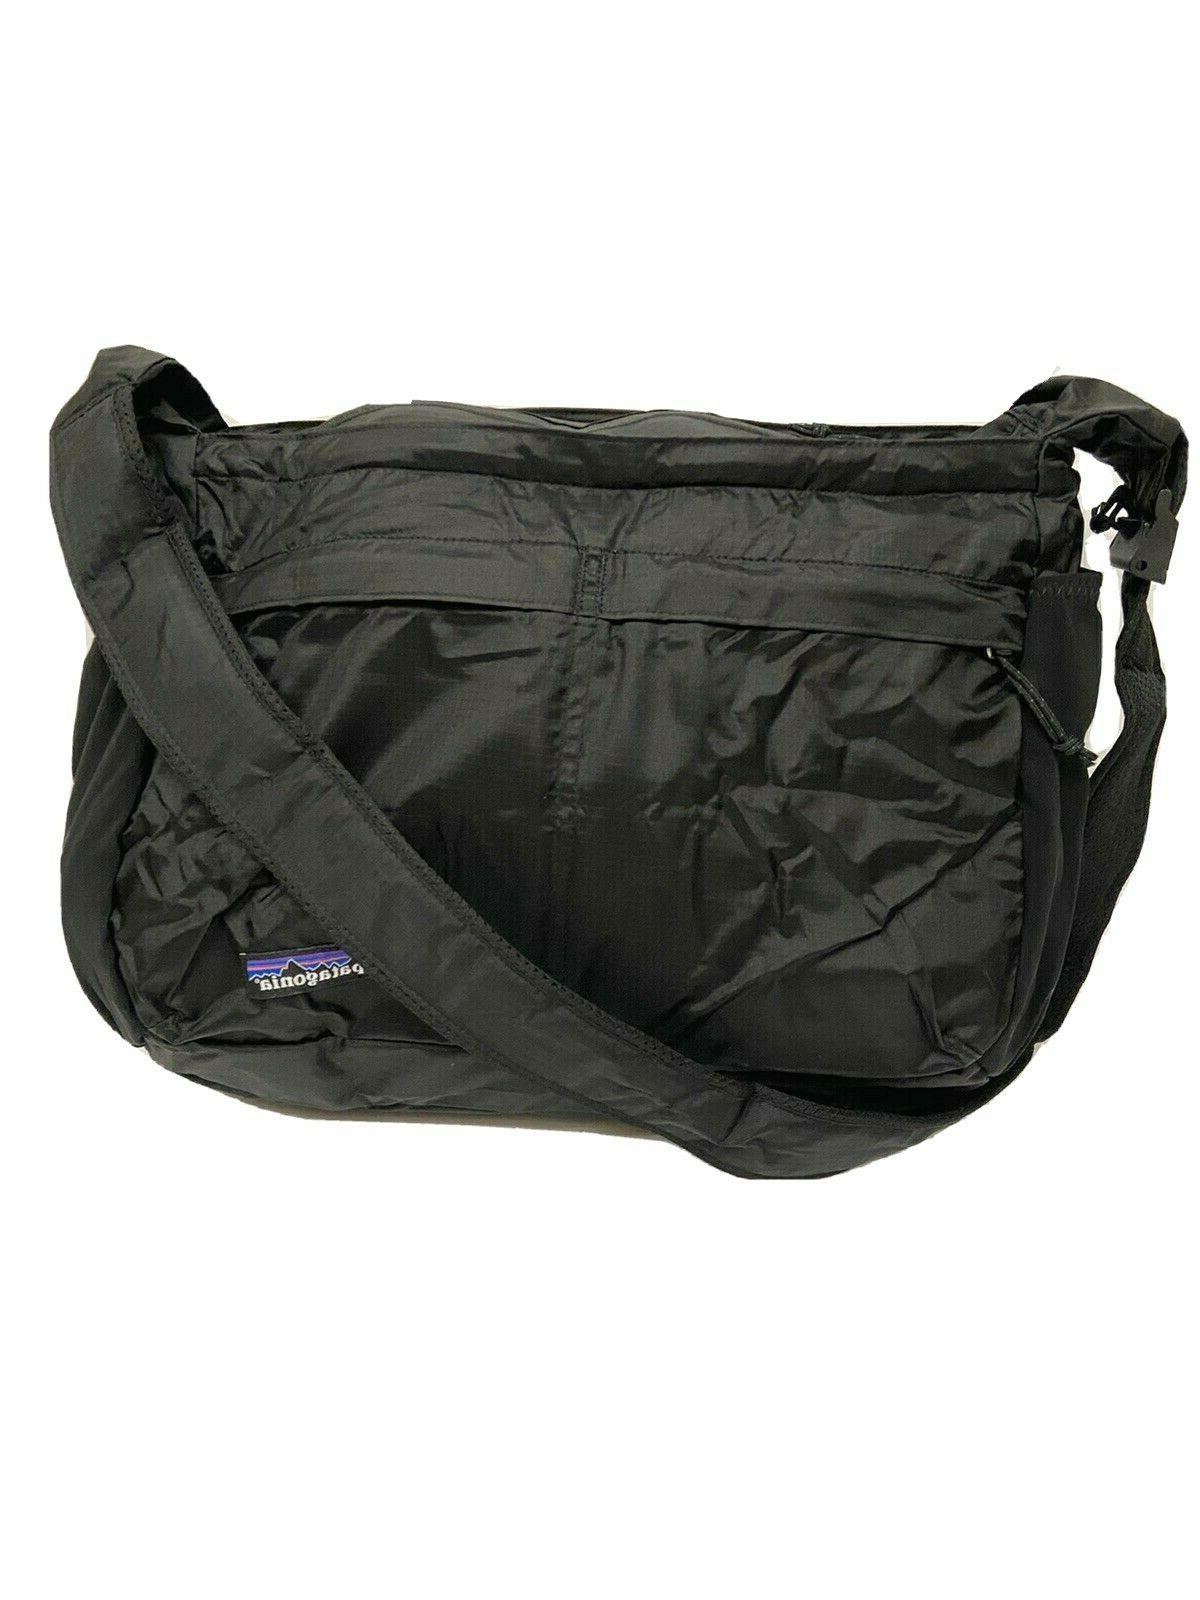 new lightweight travel courier packable shoulder bag